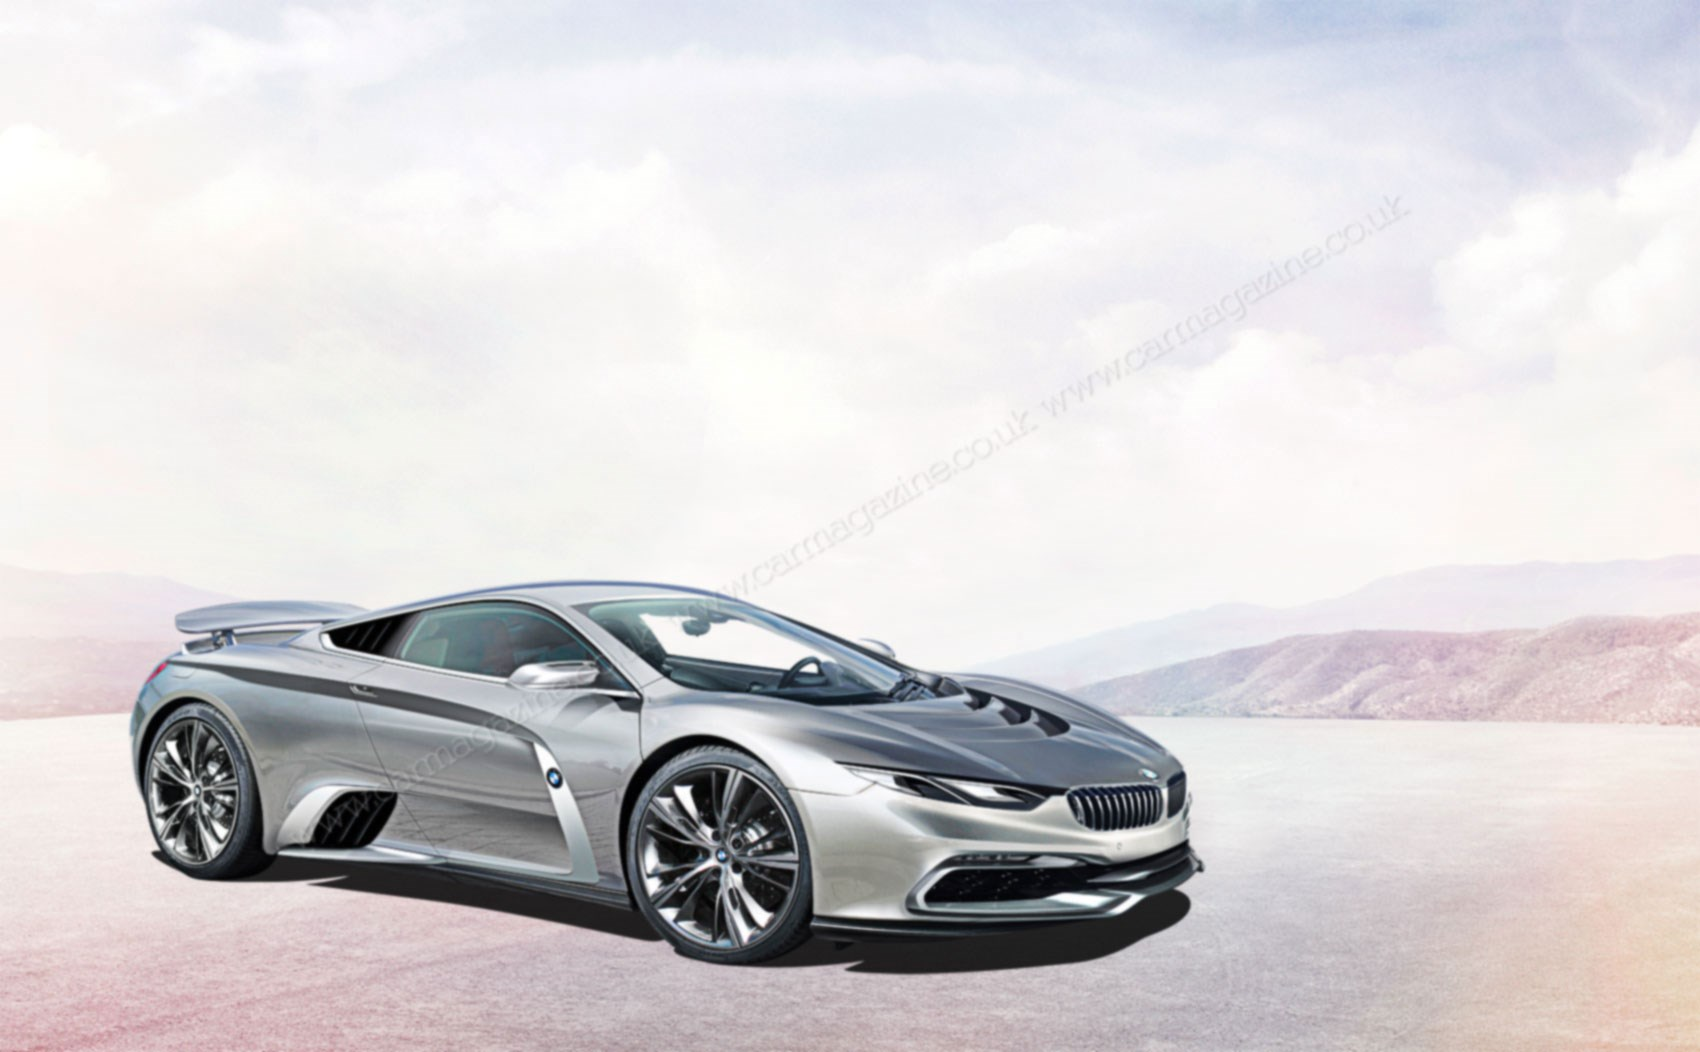 Artists Impression By Andrei Avarvarii BMW Panels On A McLaren Developed Tub Would Ensure Clear Differentiation